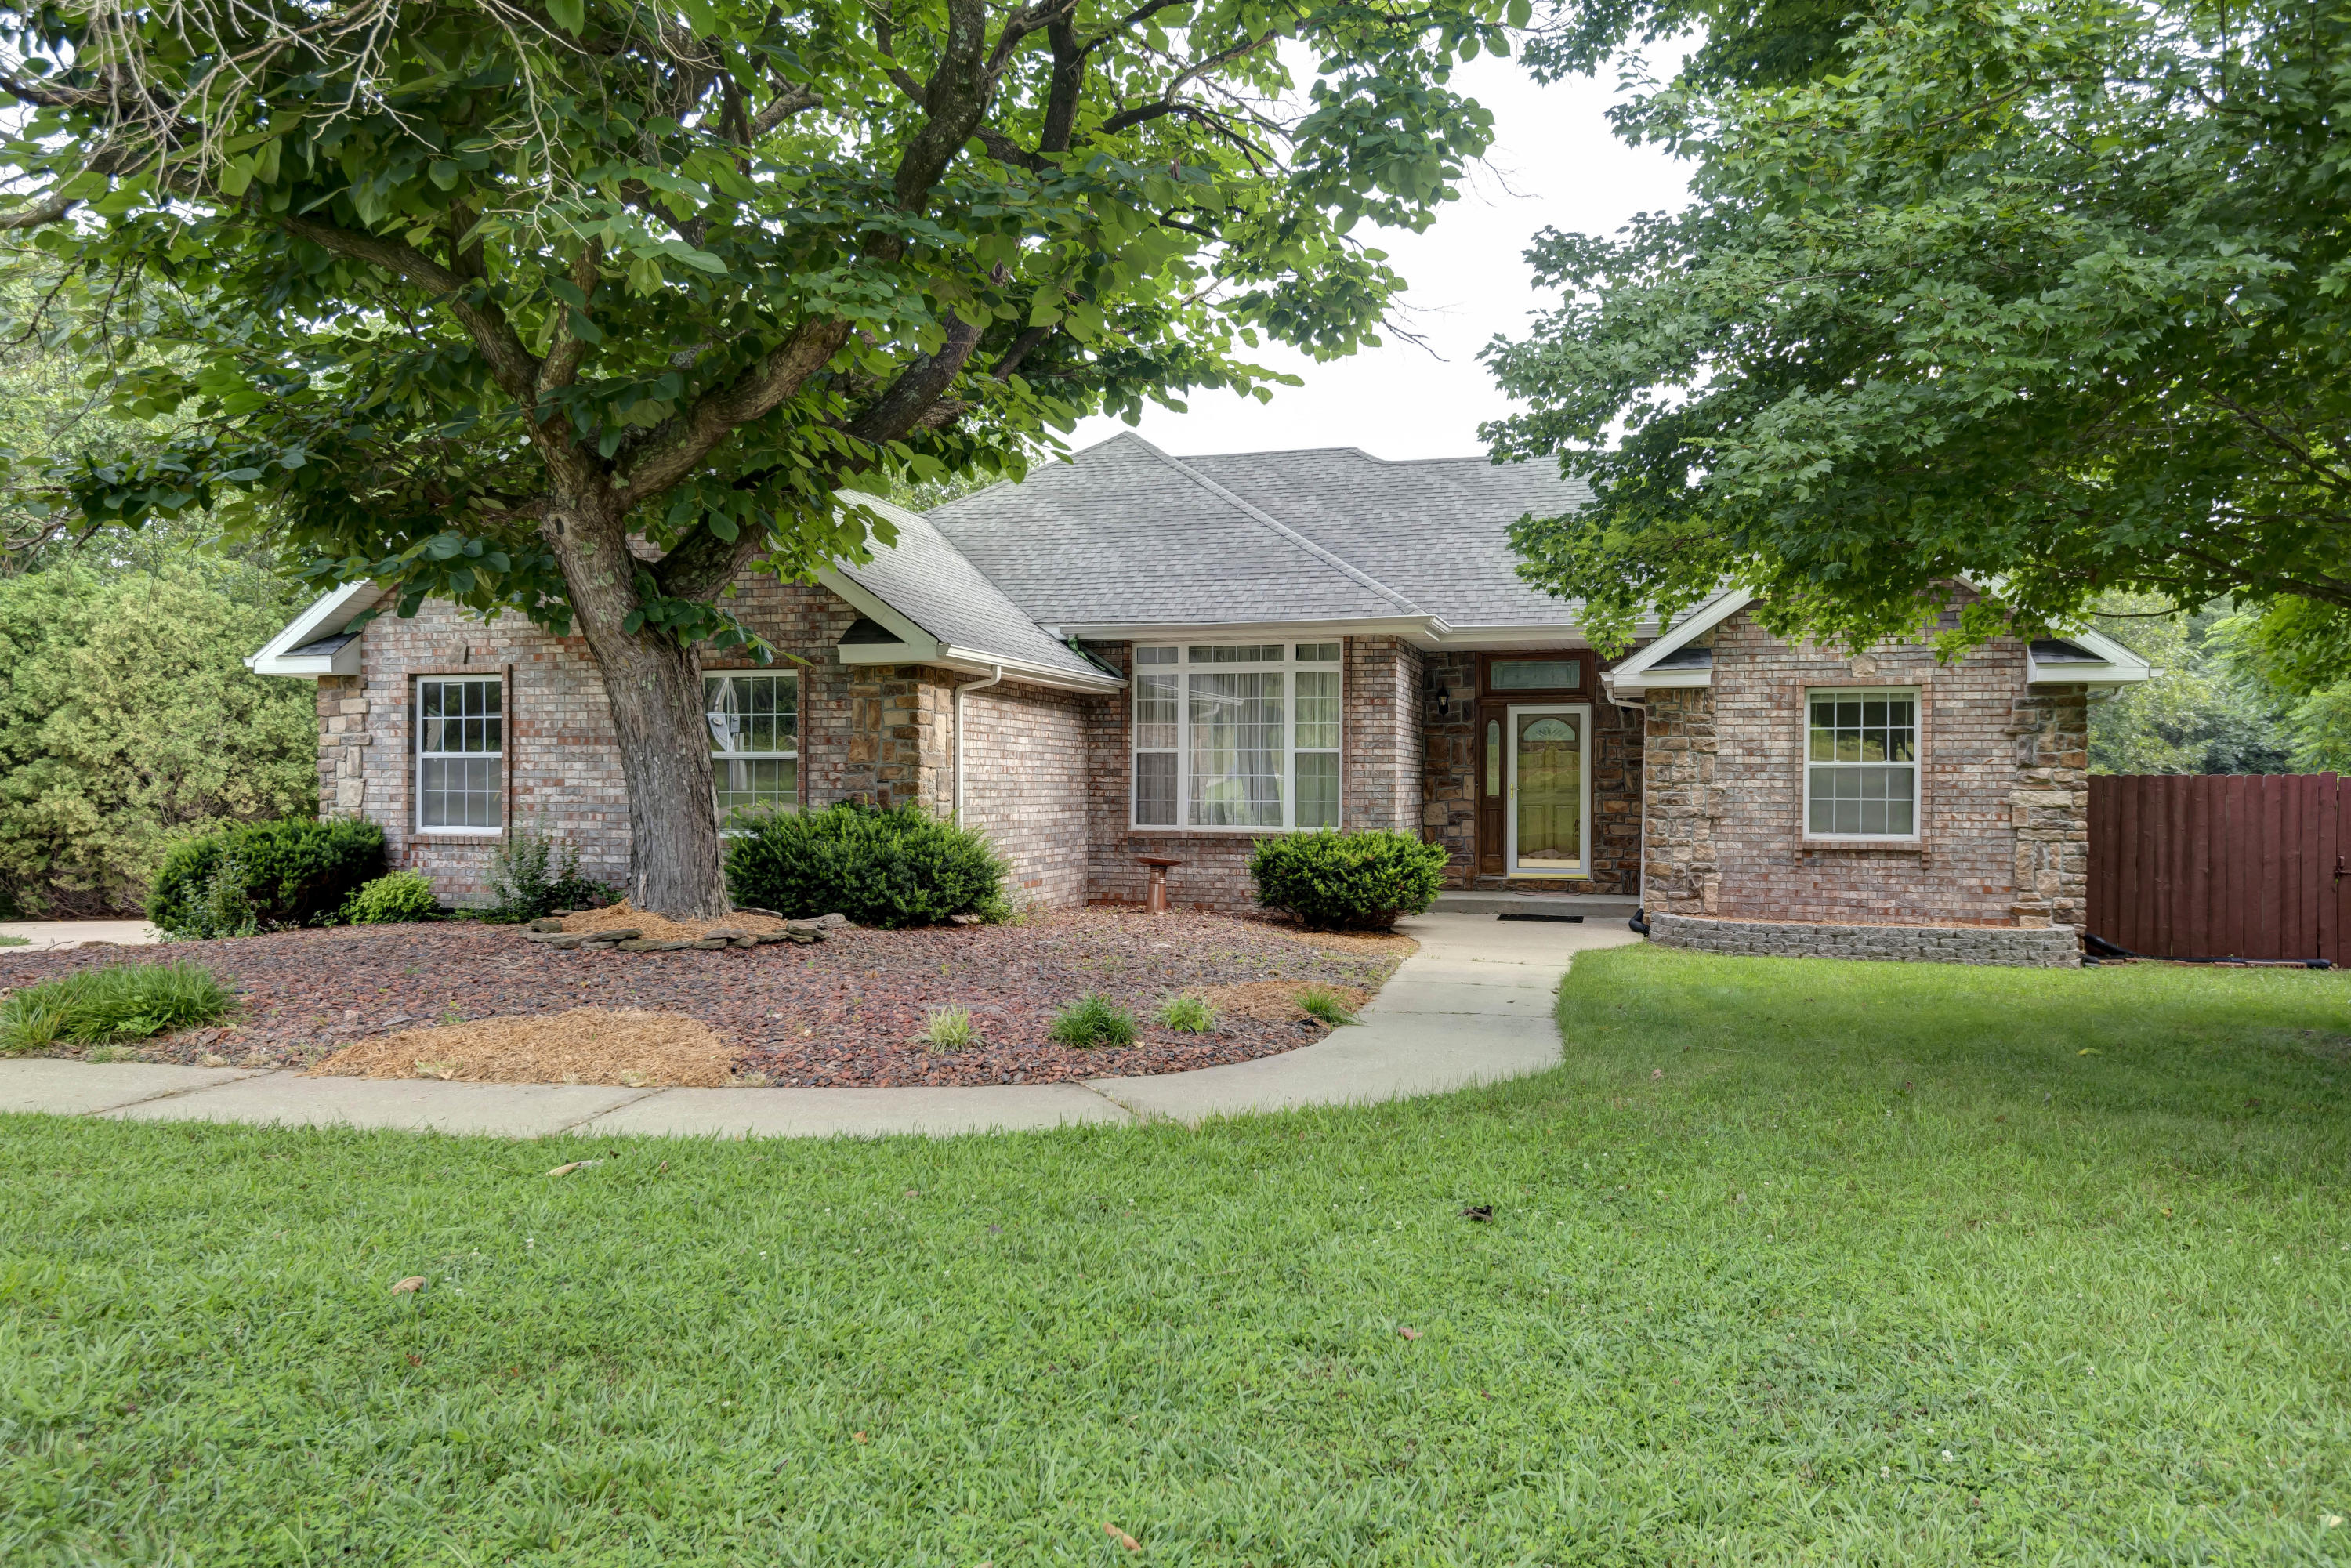 3484 State Highway Pp Fordland, MO 65652